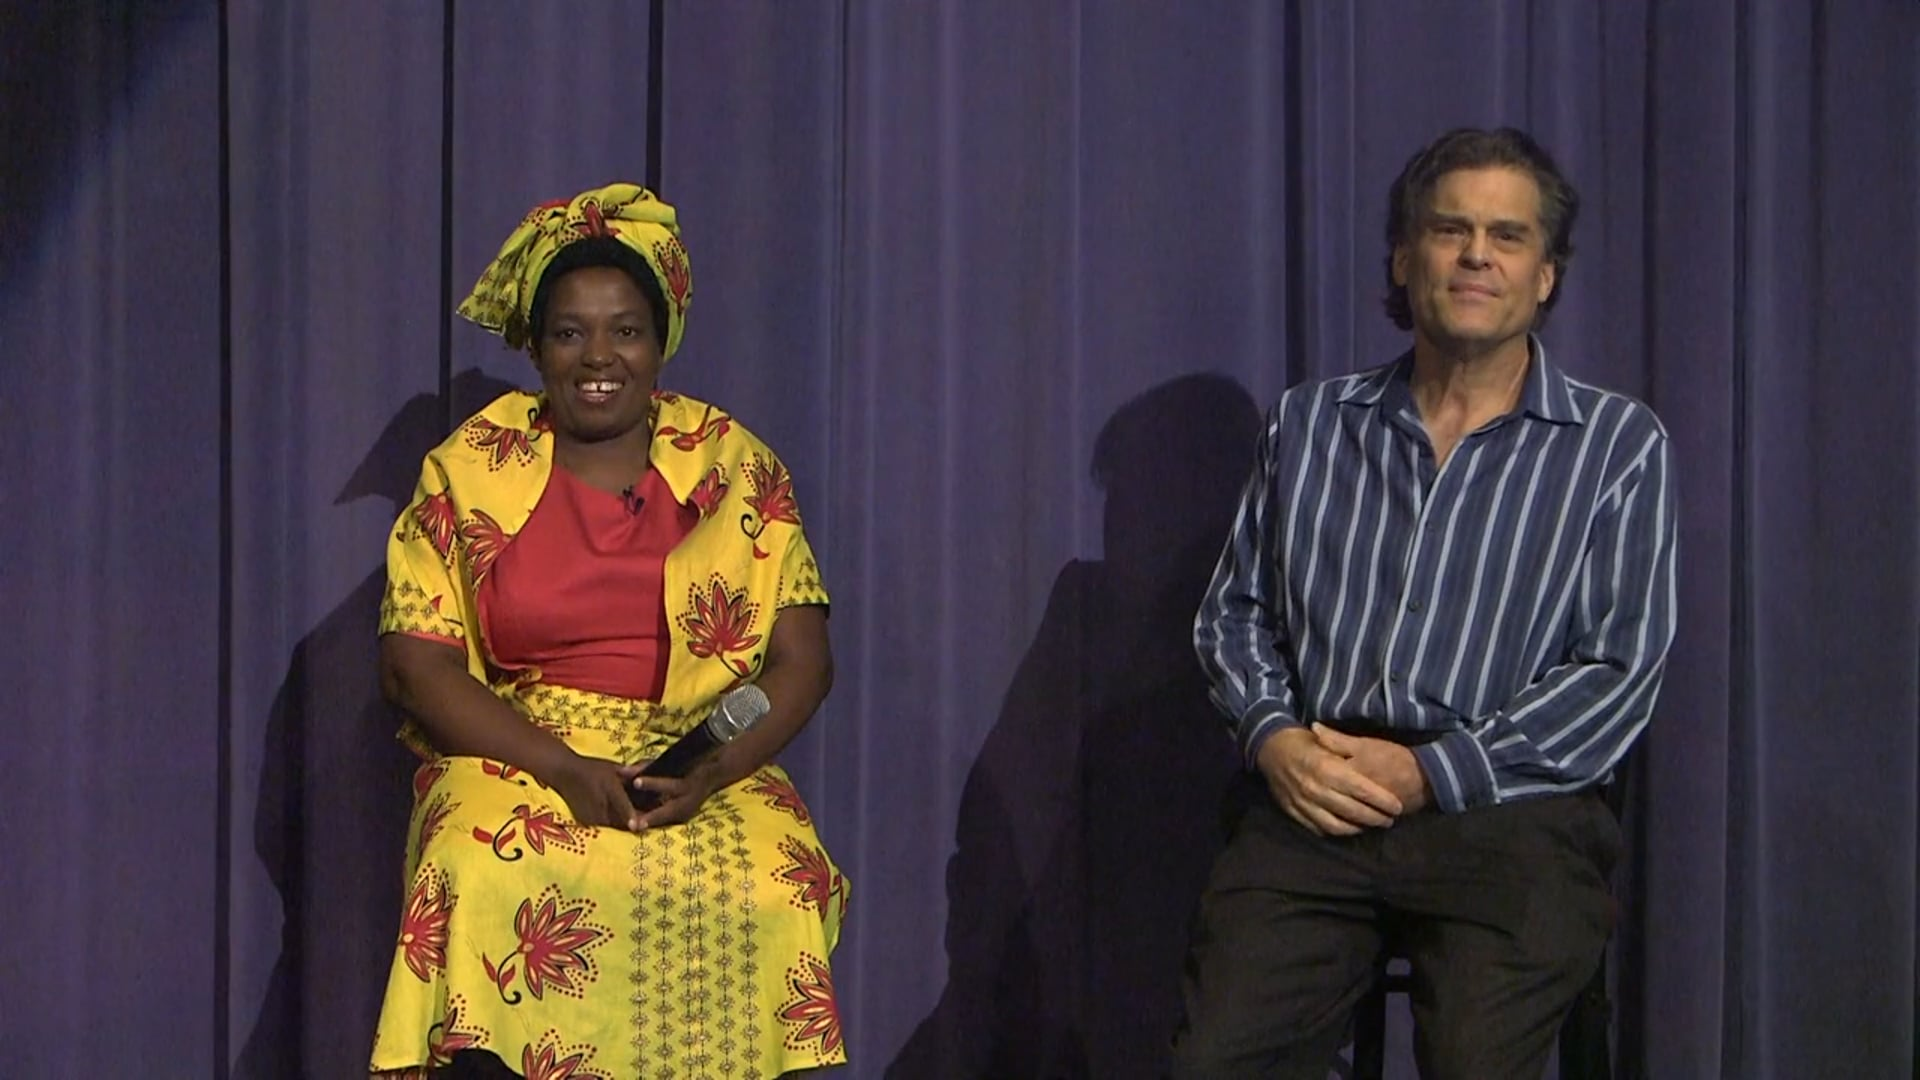 Interview with Mrs. Zikhali after film private screening